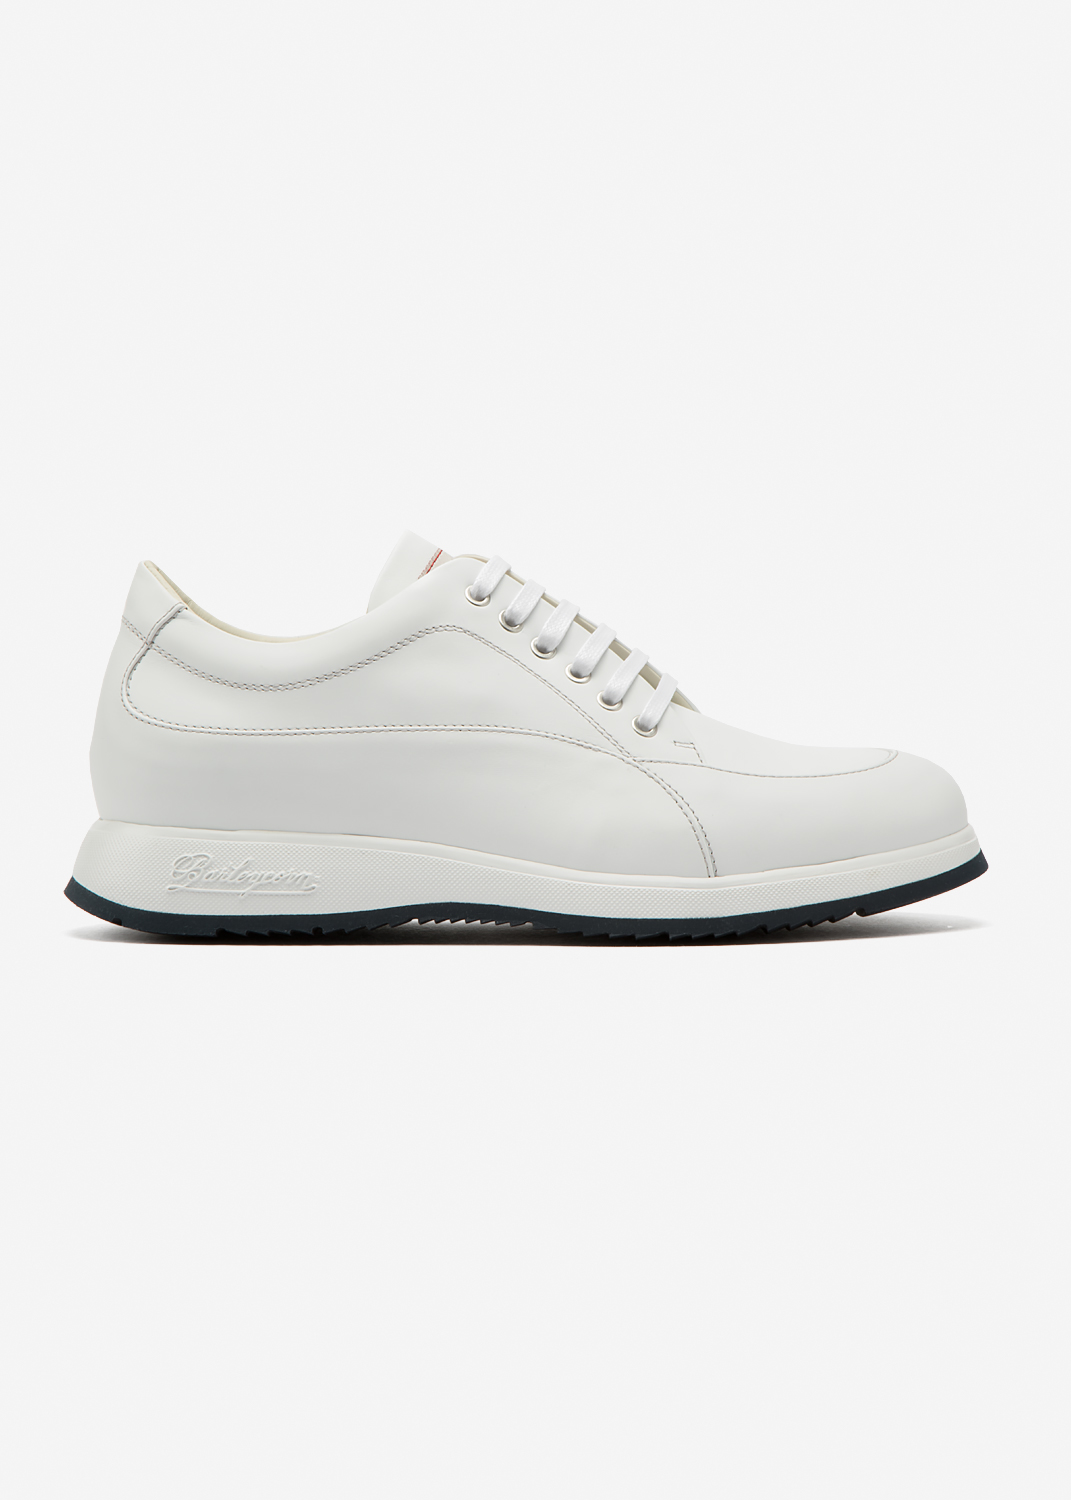 New Classic White Leather